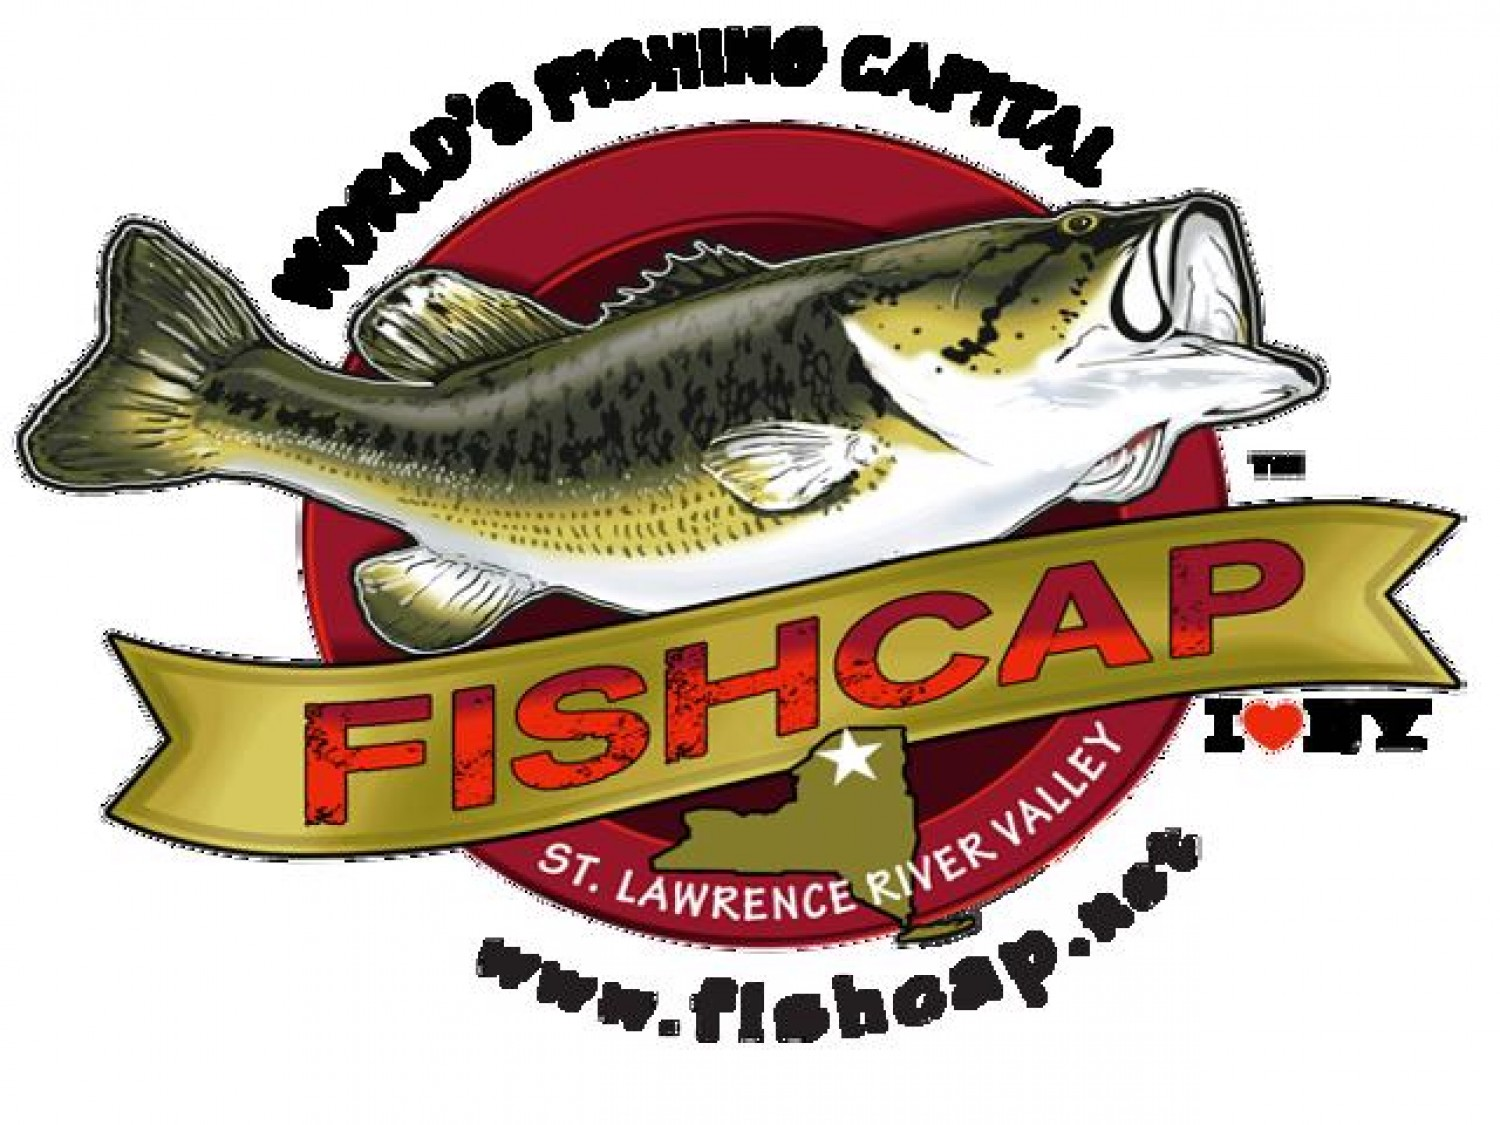 fishcap_logo-640x480